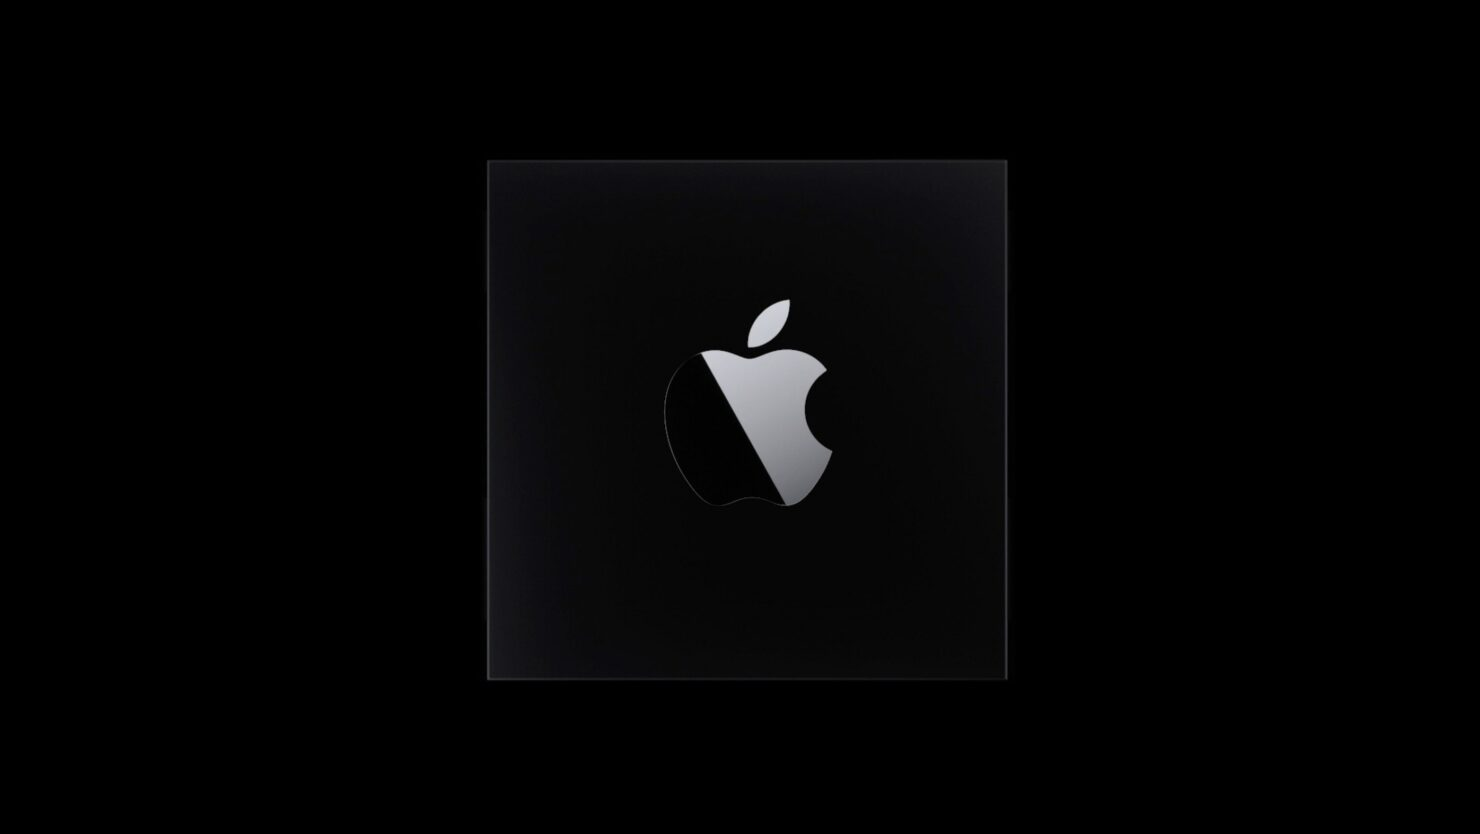 Apple Silicon Mac Could Be Held on November 17, Where Two Models Could Be Announced